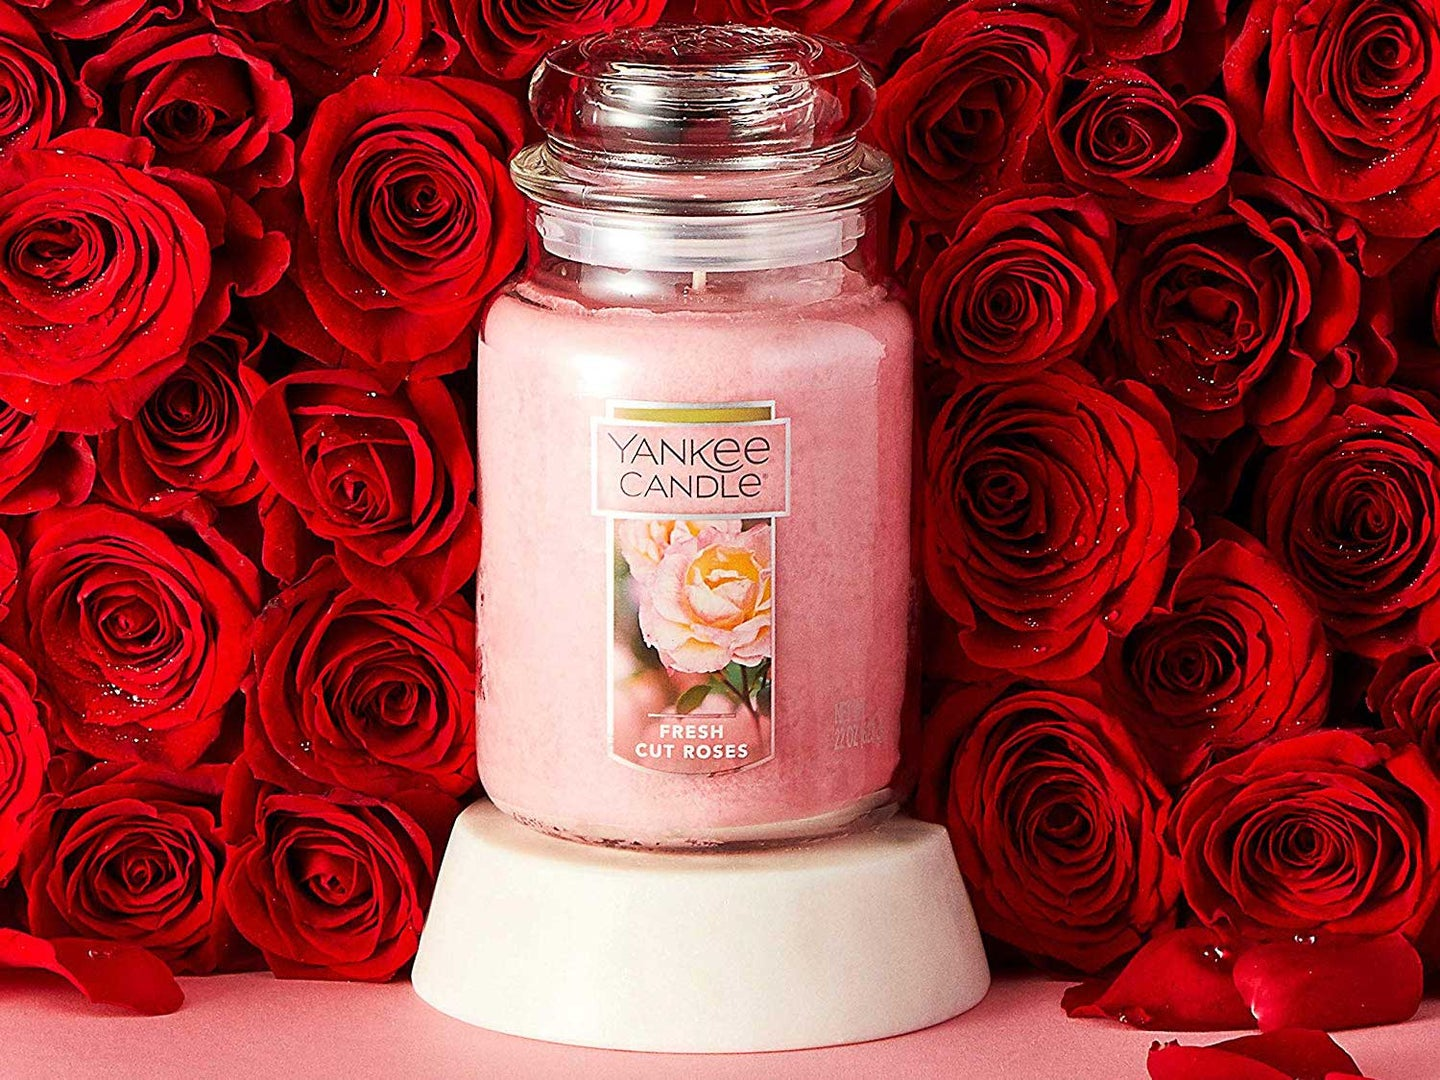 Fresh cut roses candle from Yankee